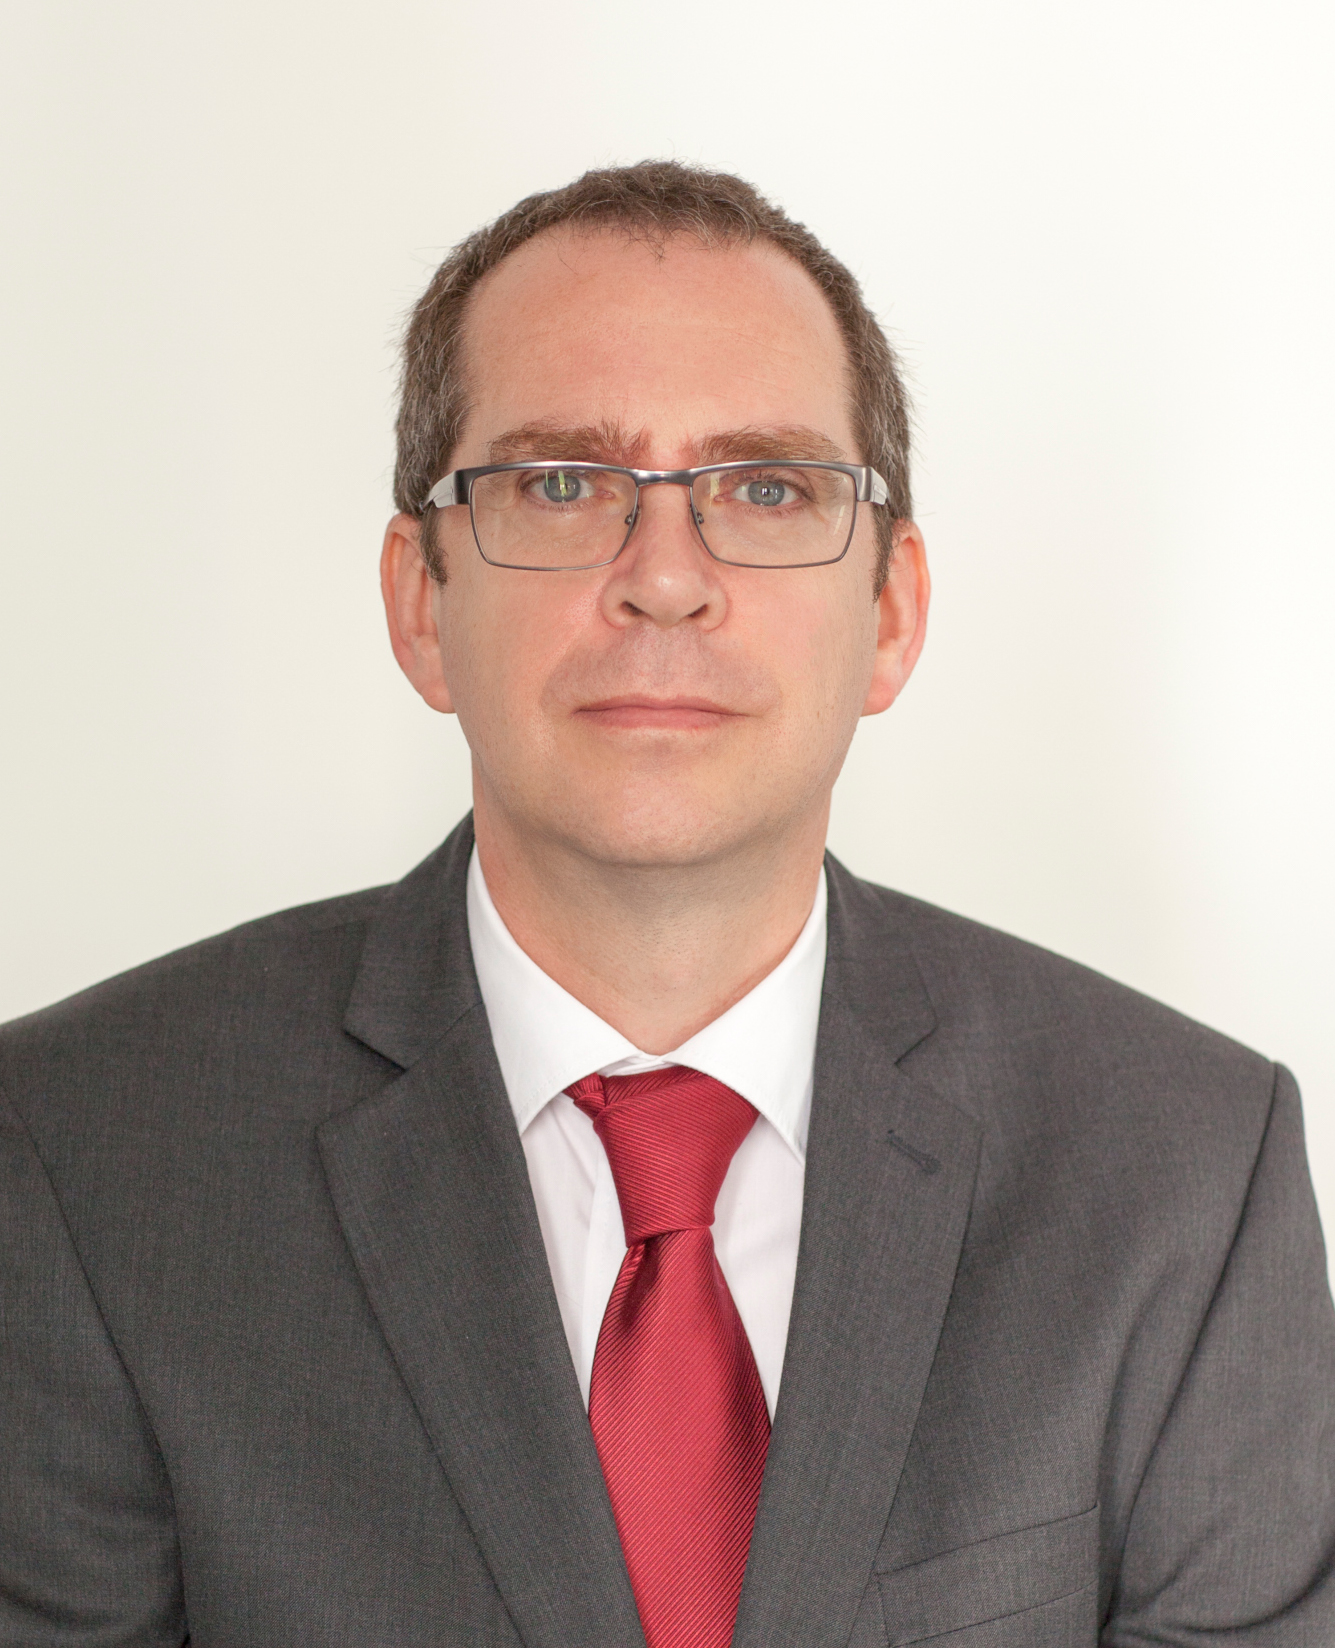 Nick Hickling  FCA    PARTNER   Accounts and business advice    nick.hickling@sampsonwest.co.uk